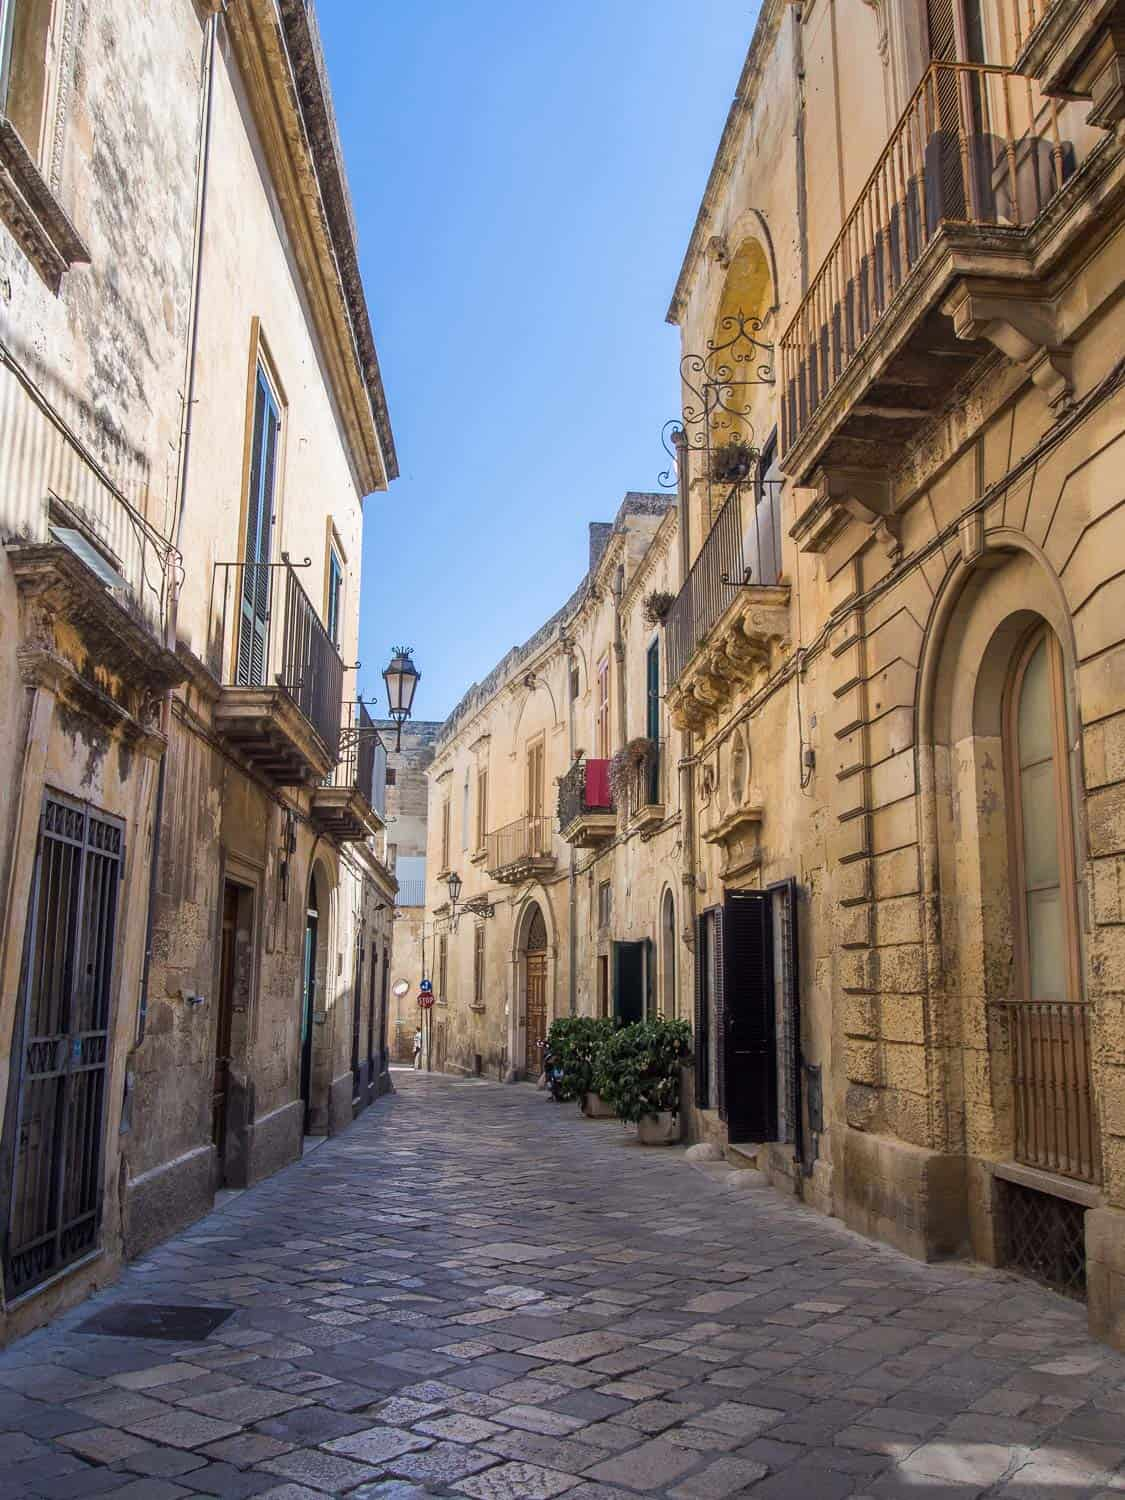 Our street in Lecce